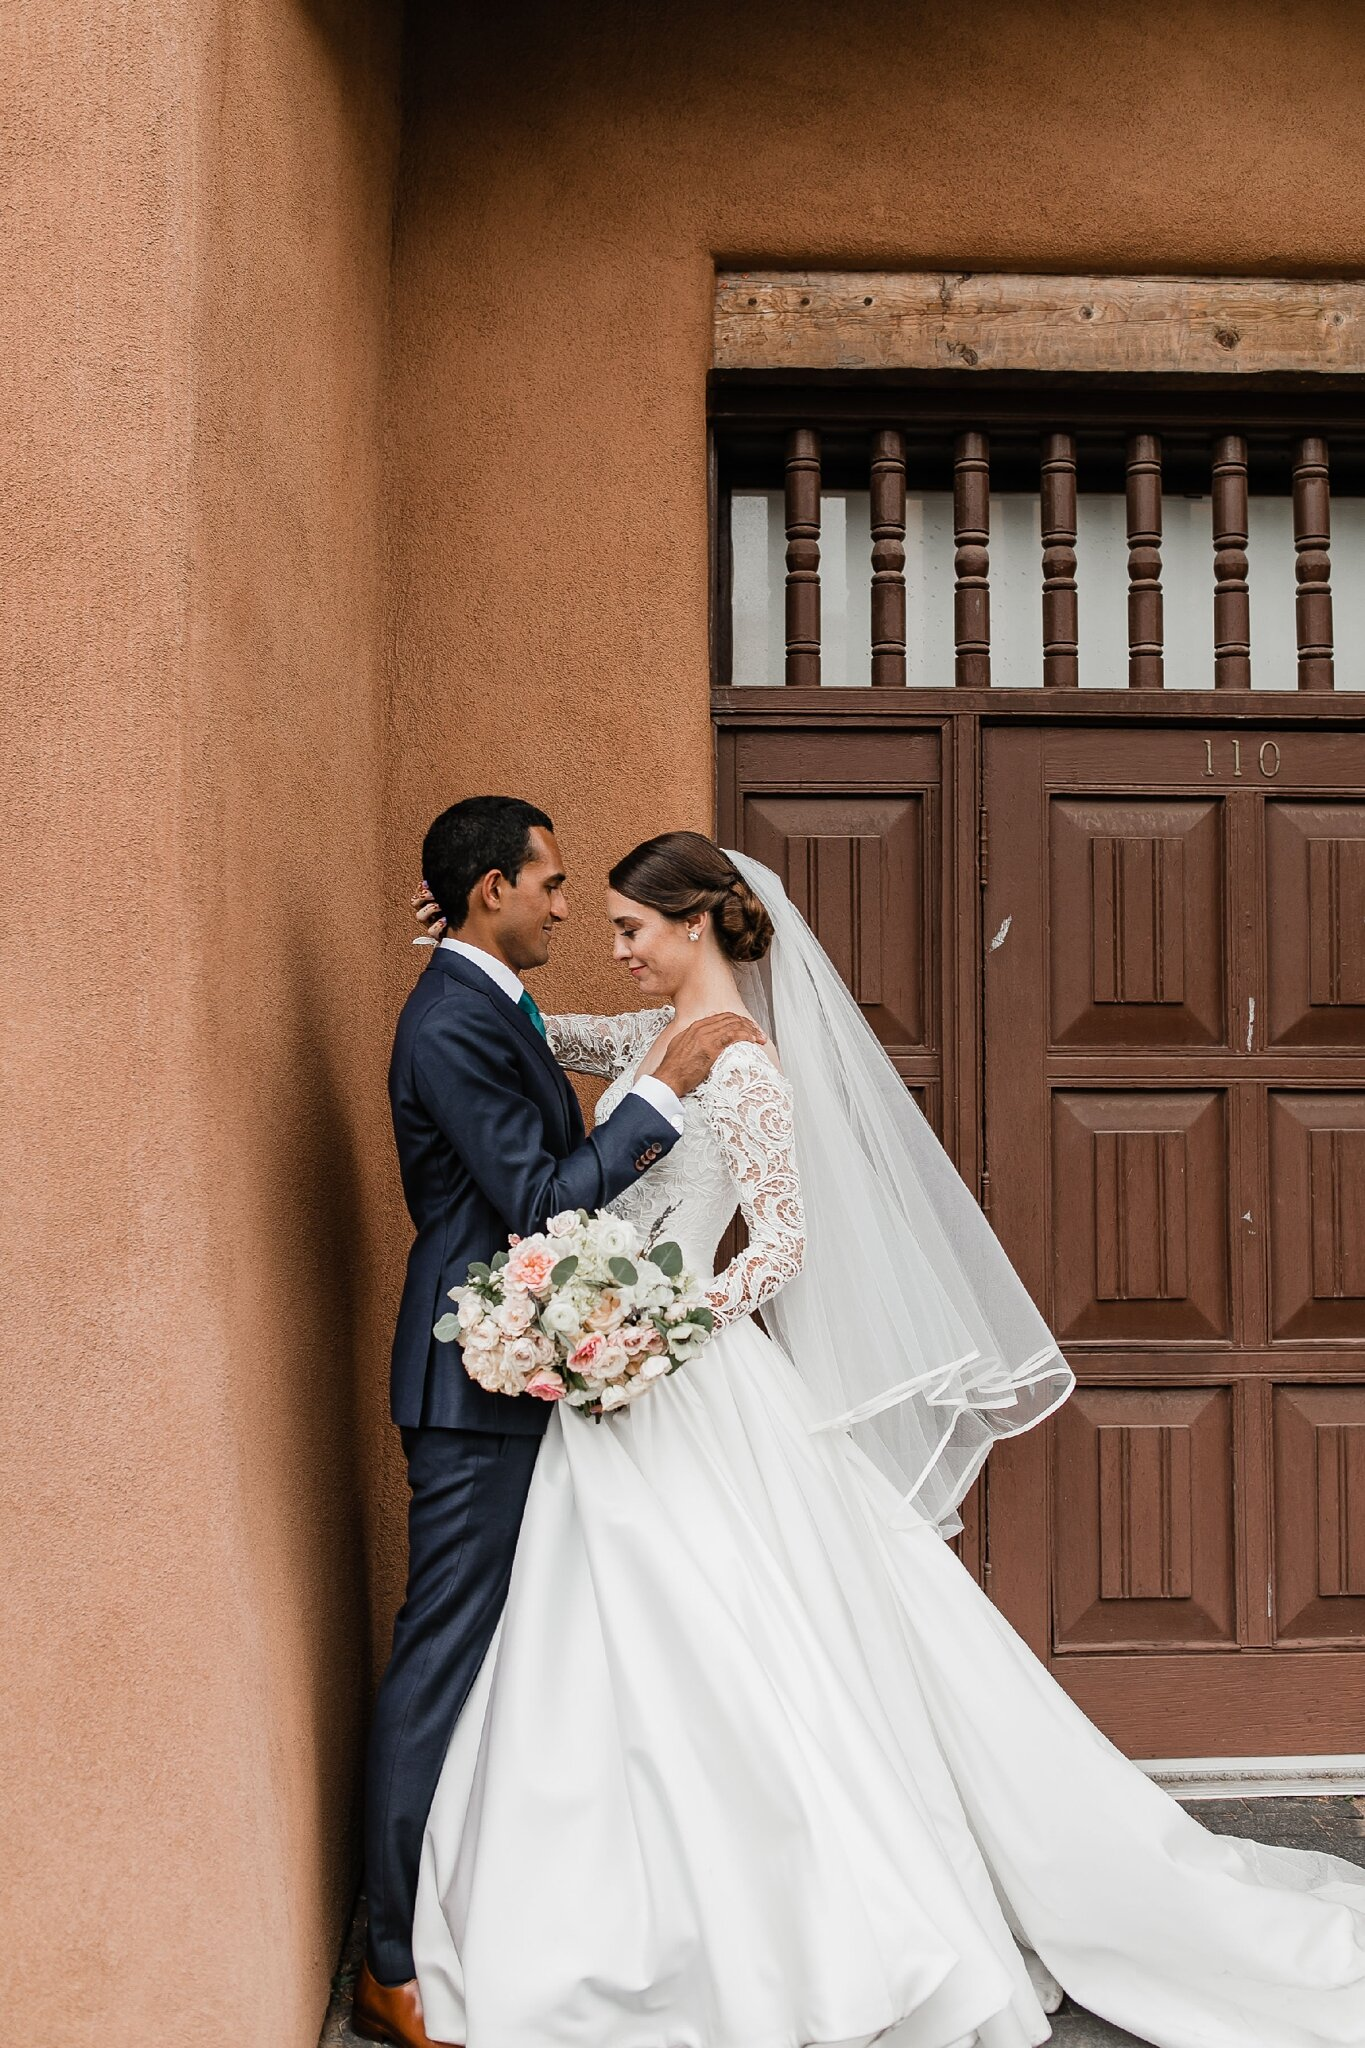 Alicia+lucia+photography+-+albuquerque+wedding+photographer+-+santa+fe+wedding+photography+-+new+mexico+wedding+photographer+-+new+mexico+wedding+-+wedding+-+bridal+gown+-+wedding+gown+-+ballgown+wedding+gown+-+ballgown+bridal+gown_0009.jpg